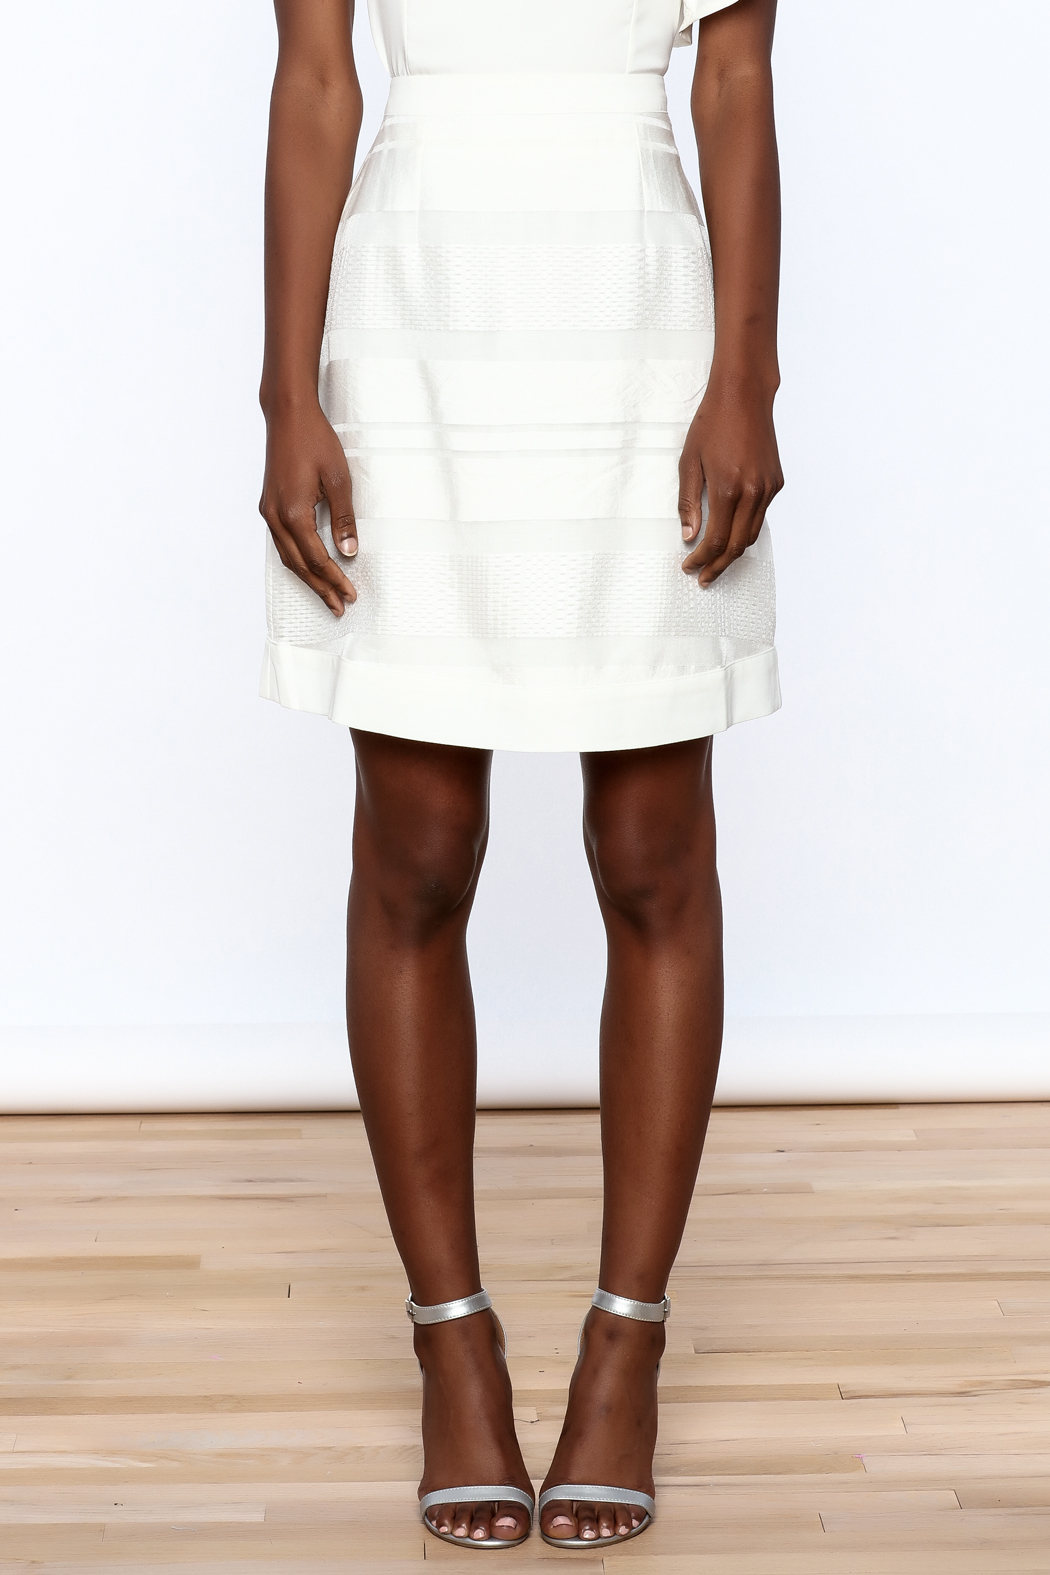 Sugar Lips White Stripes Skirt - Side Cropped Image